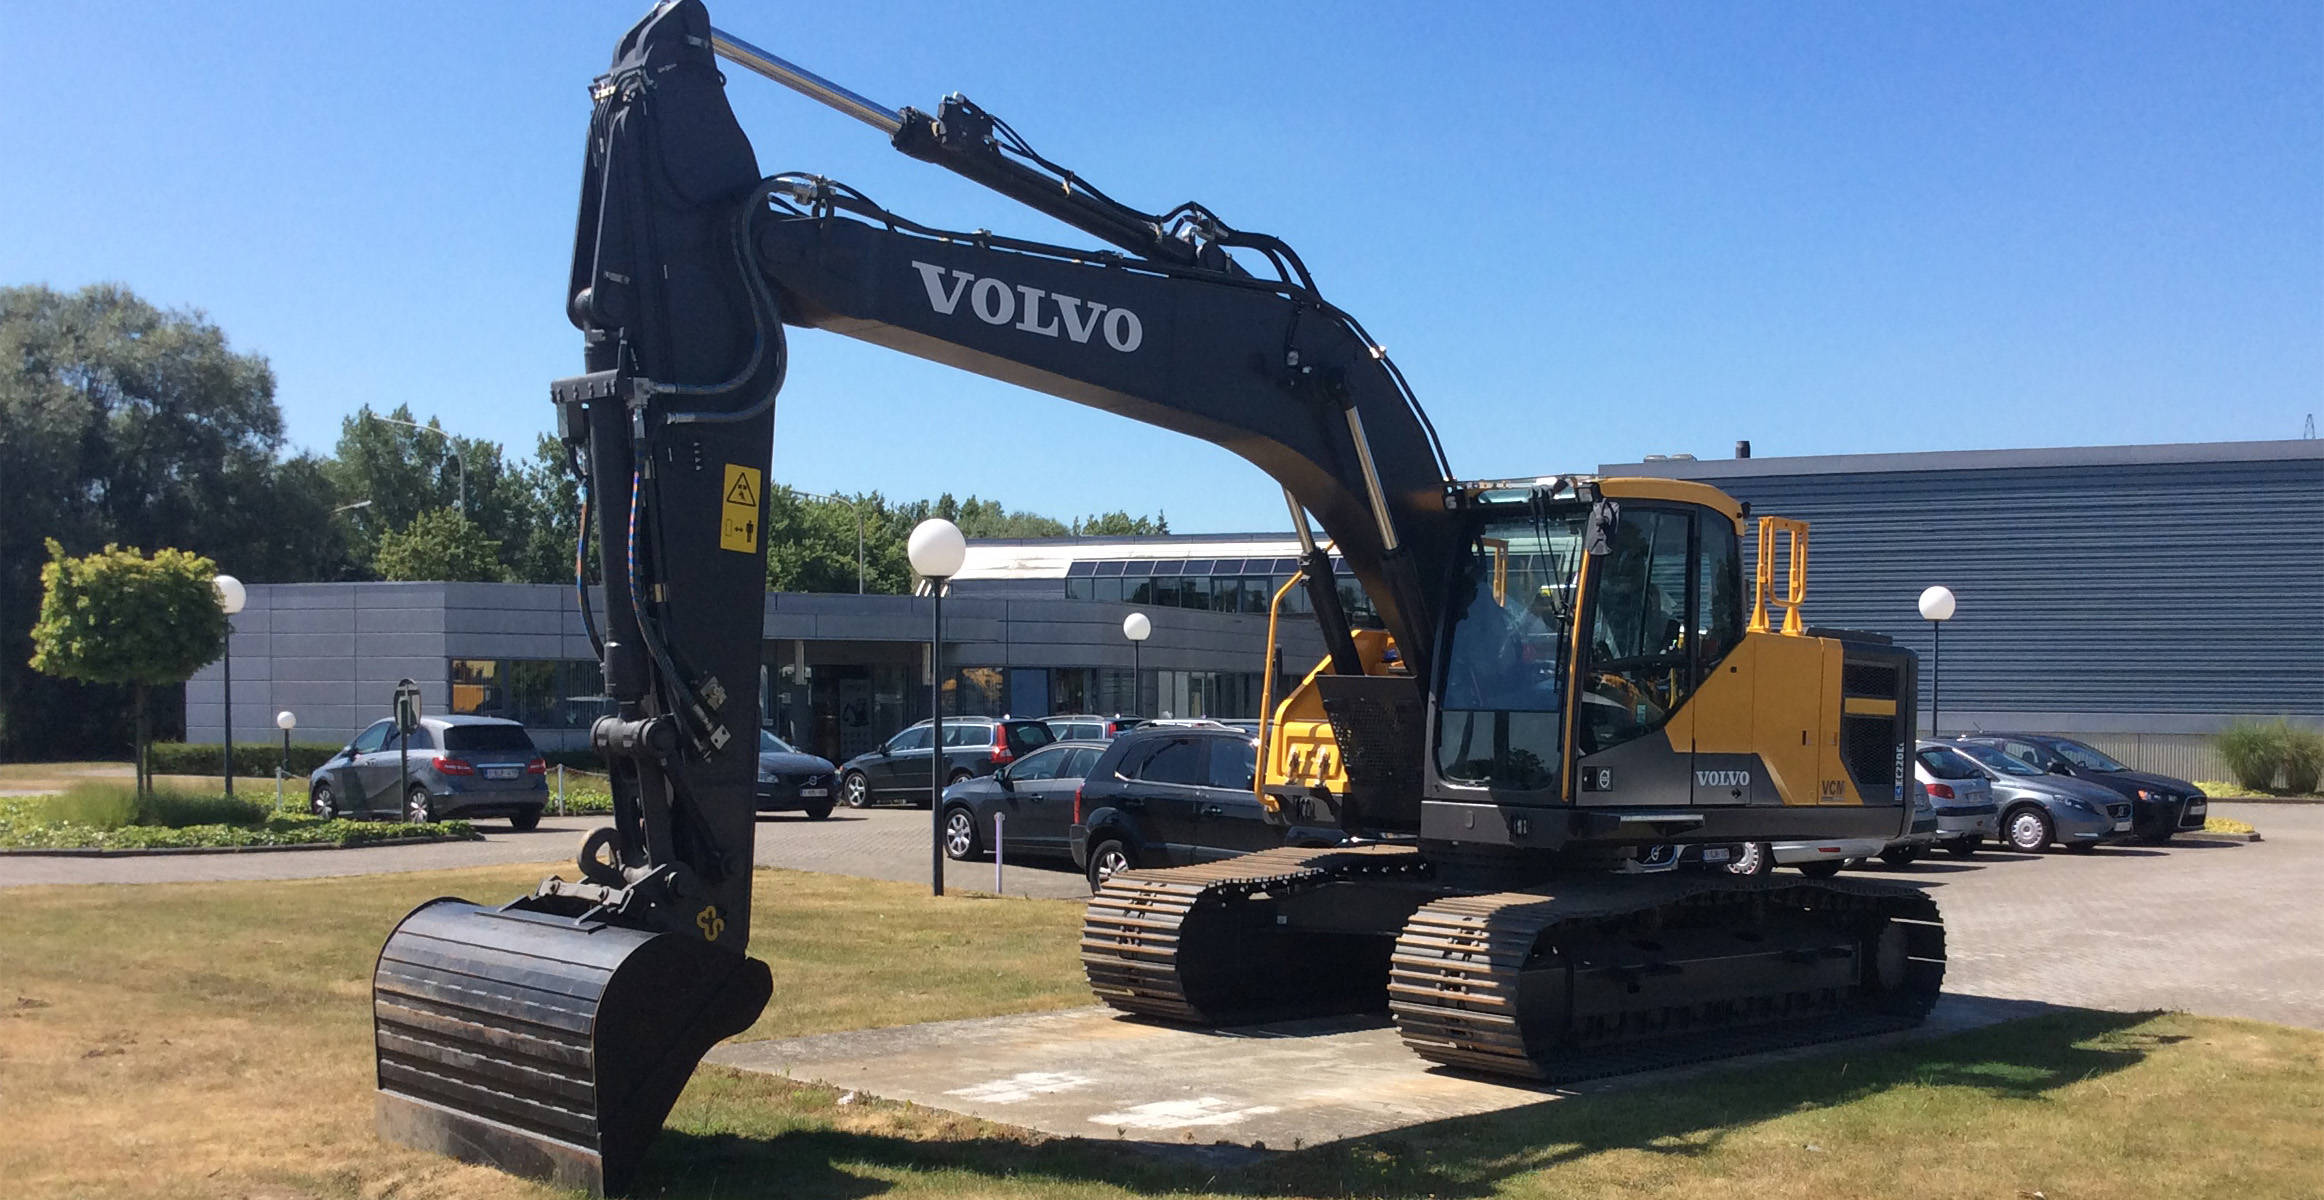 concessionnaire volvo : volvo construction equipment